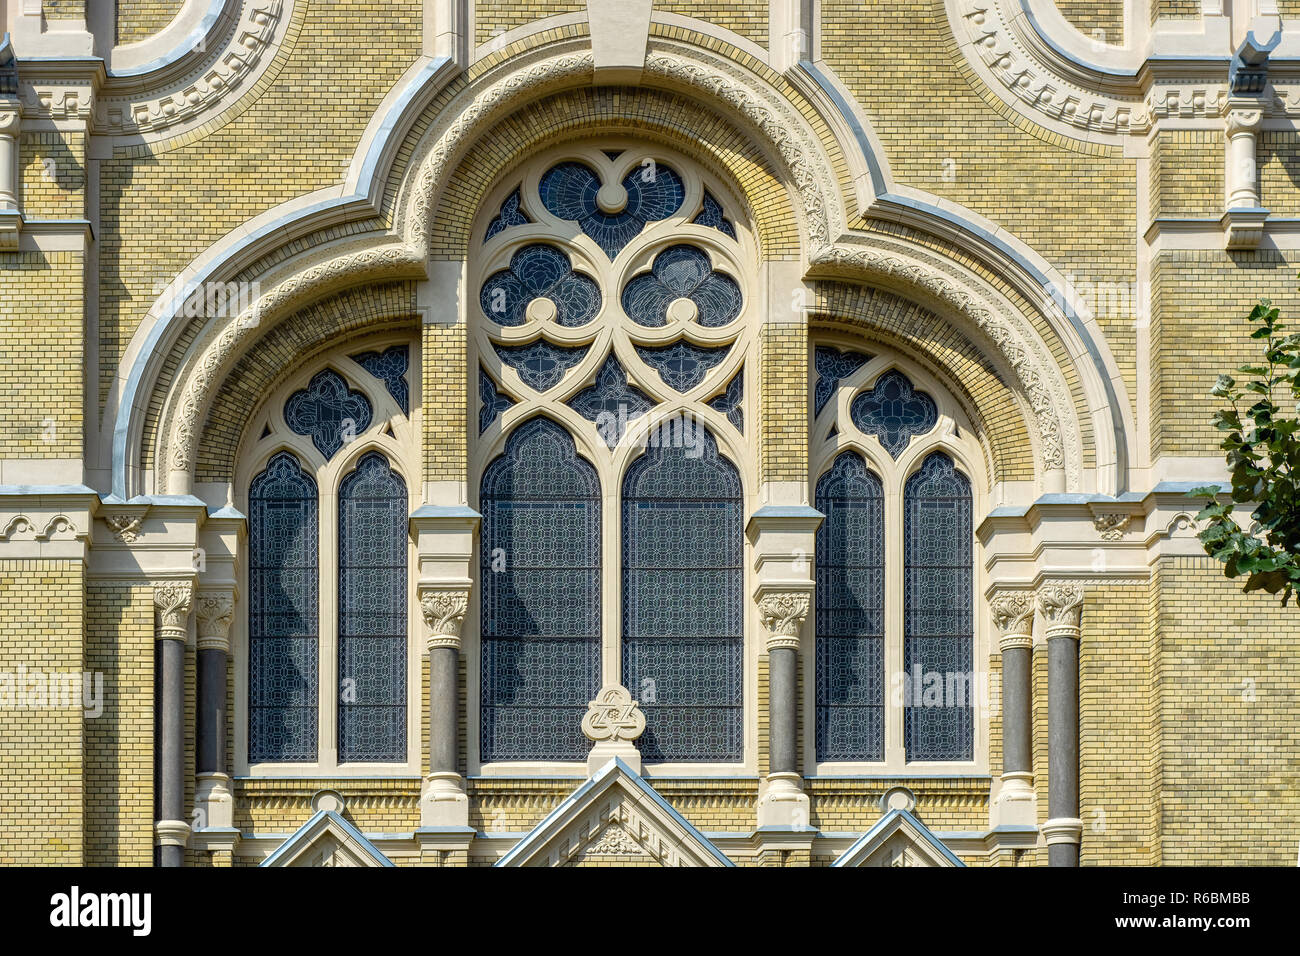 Large arched window of the synagogue with stained glass Windows on the background of the yellow brick wall. - Stock Image